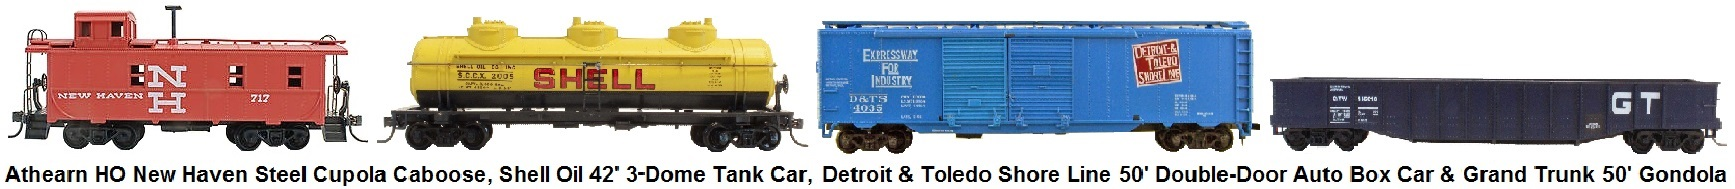 Athearn HO scale freight cars - New Haven Steel Cupola Caboose, Shell Oil 42' 3-dome Tank Car, Detroit & Toledo Shore Line 50' Double Door Automobile Car, and Grand Trunk 50' Gondola